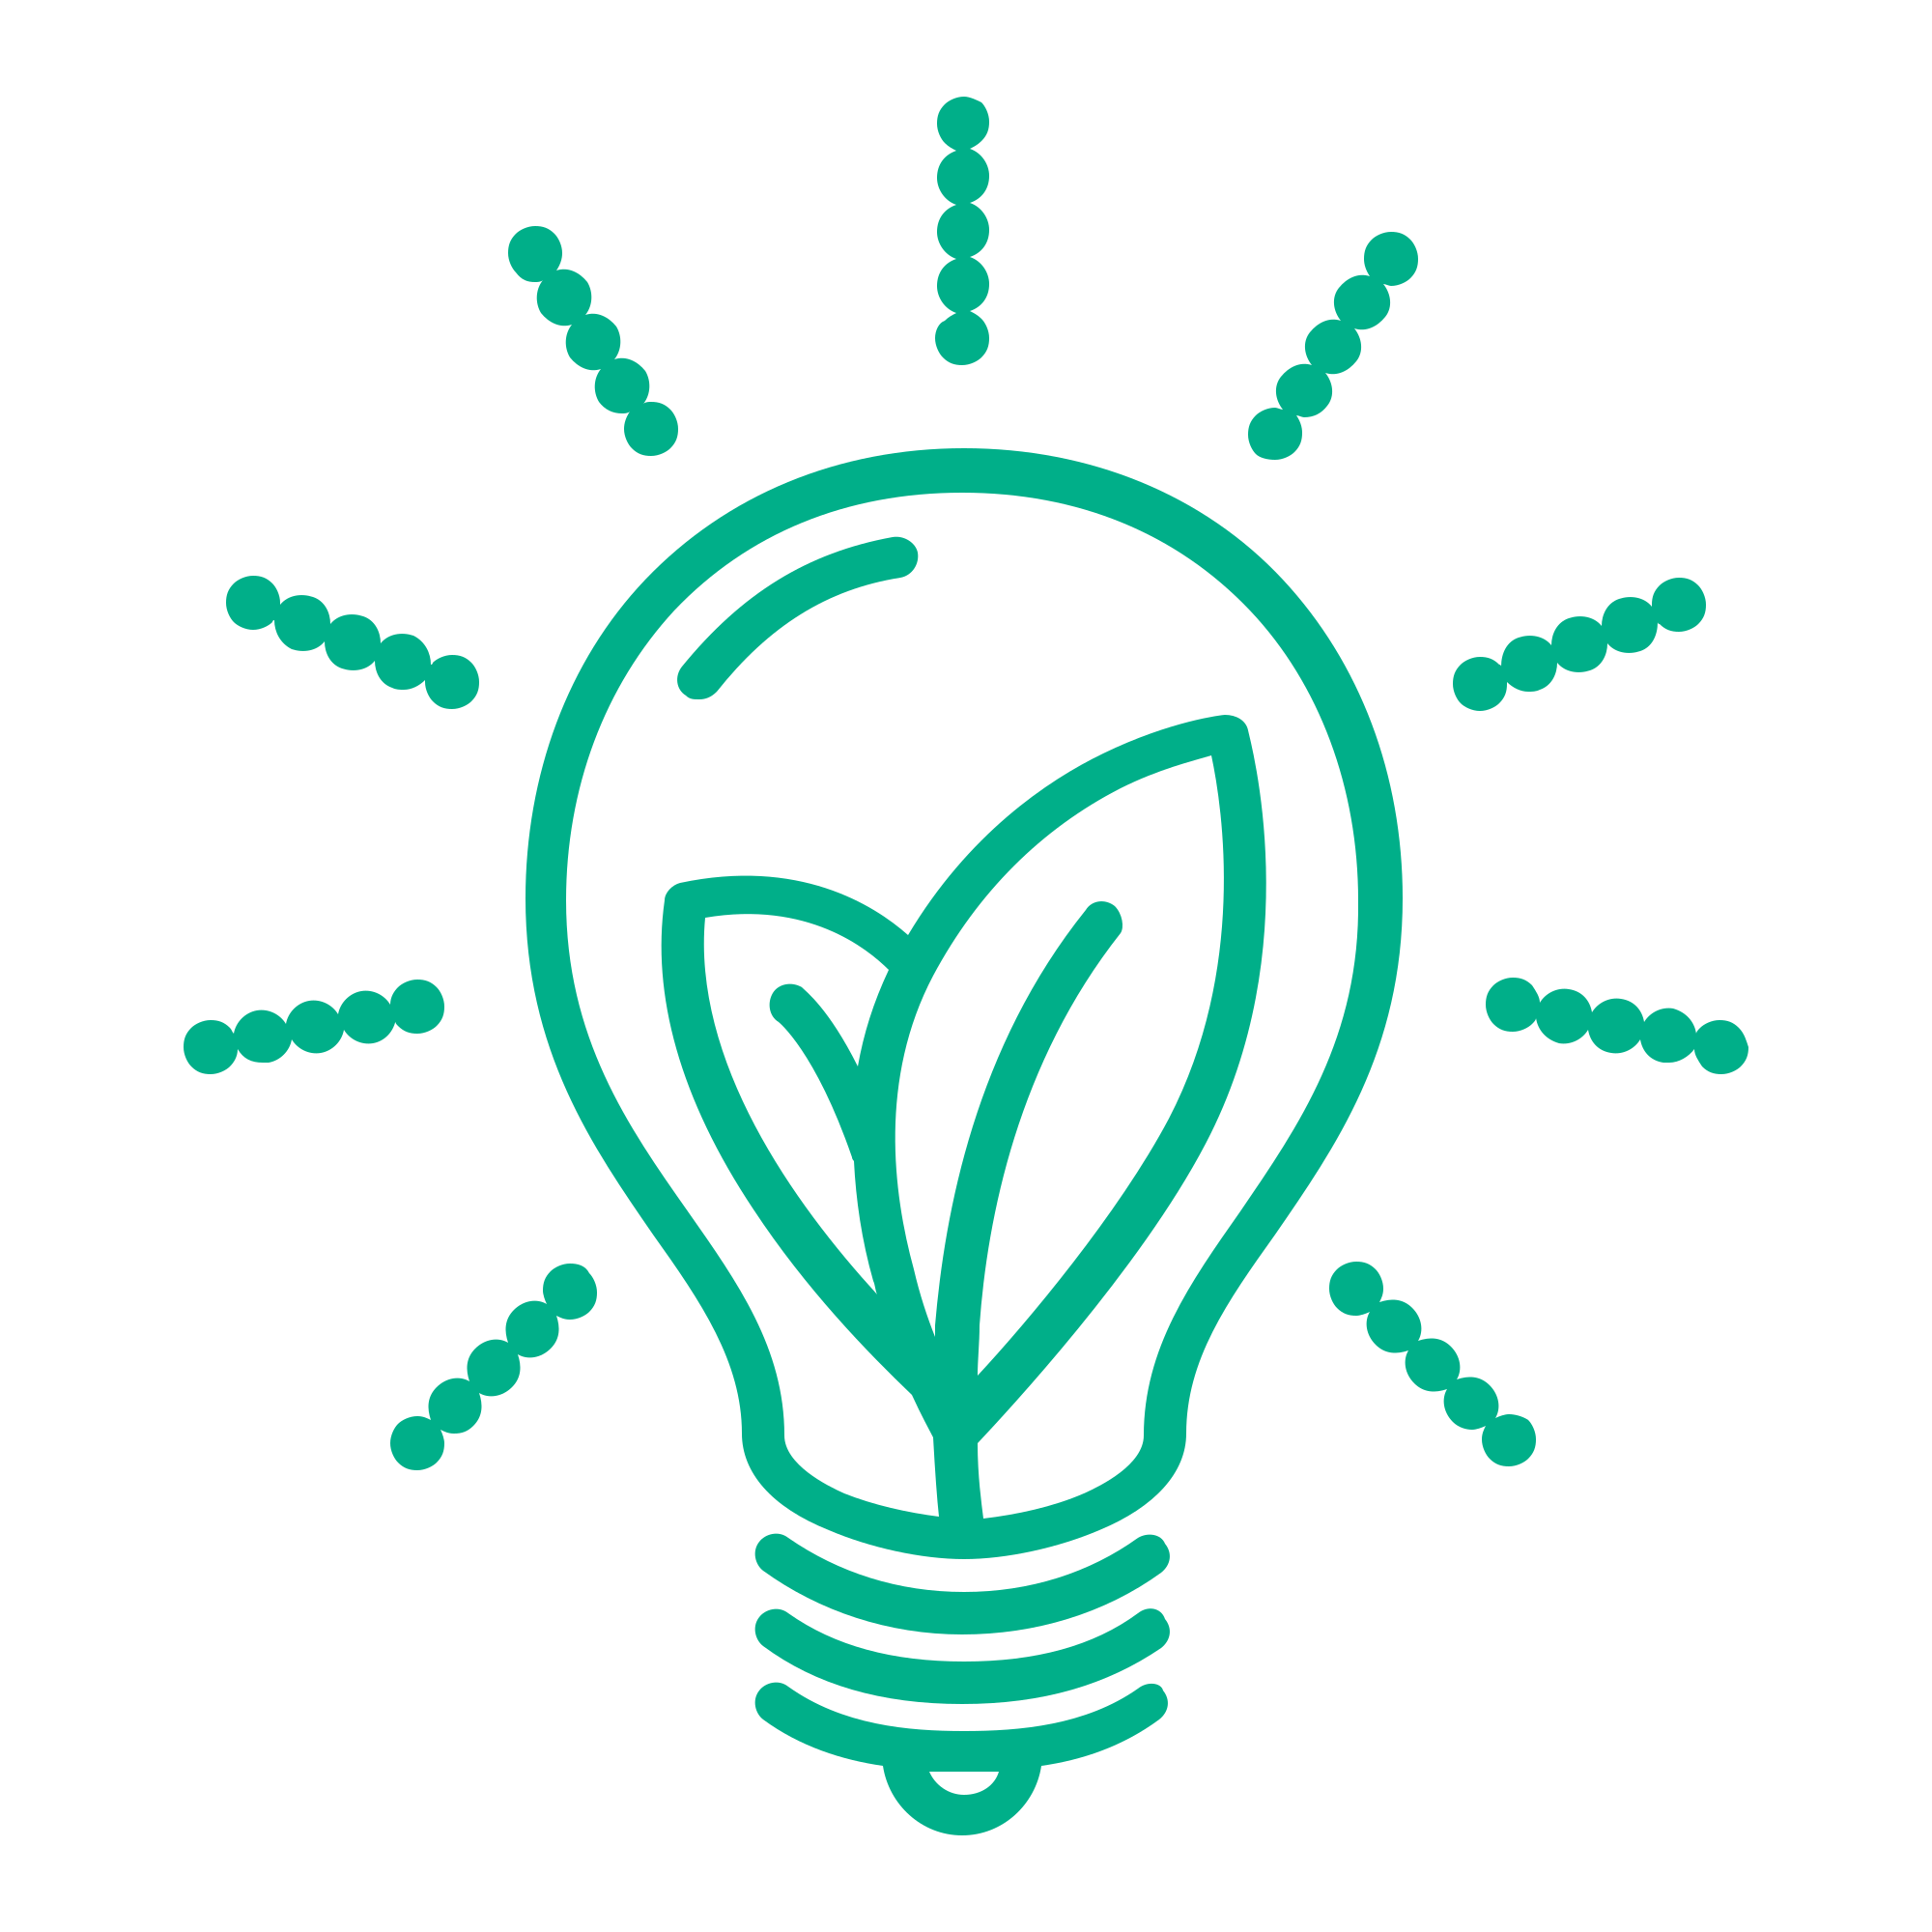 Green light bulb png. File icon by till